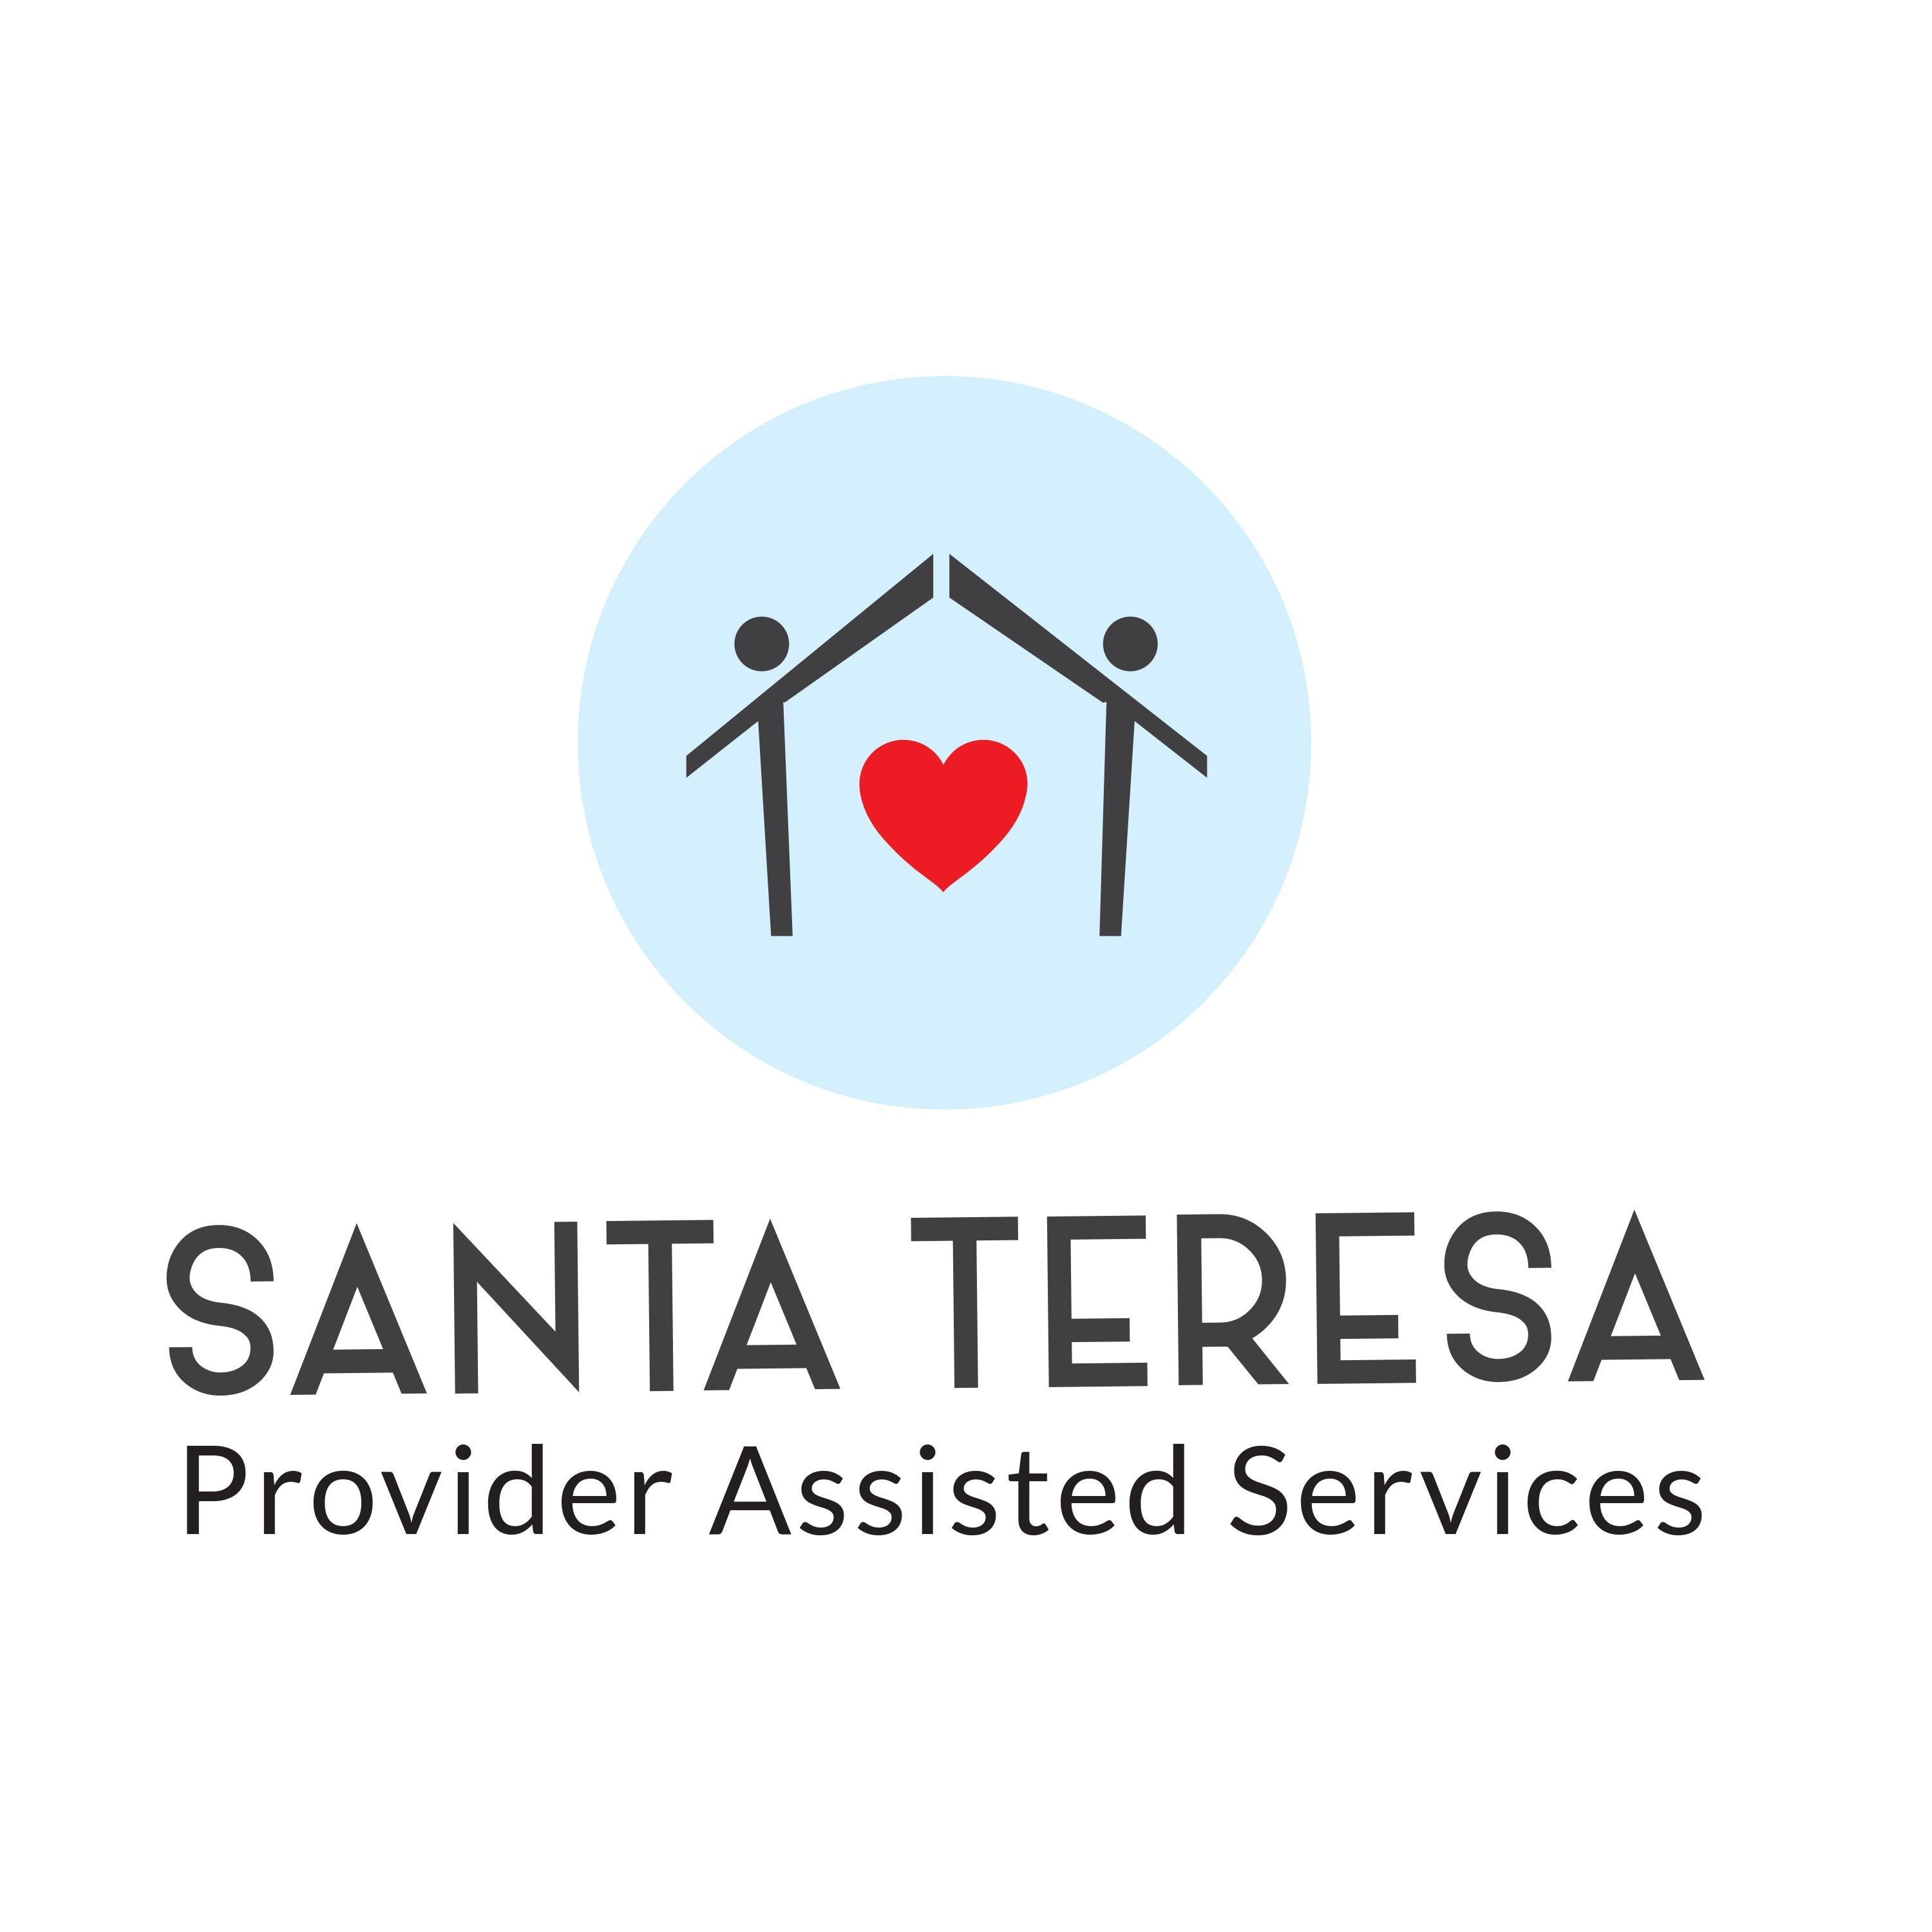 Santa Teresa Provider Assisted Services - El Paso, TX - Home Health Care Services